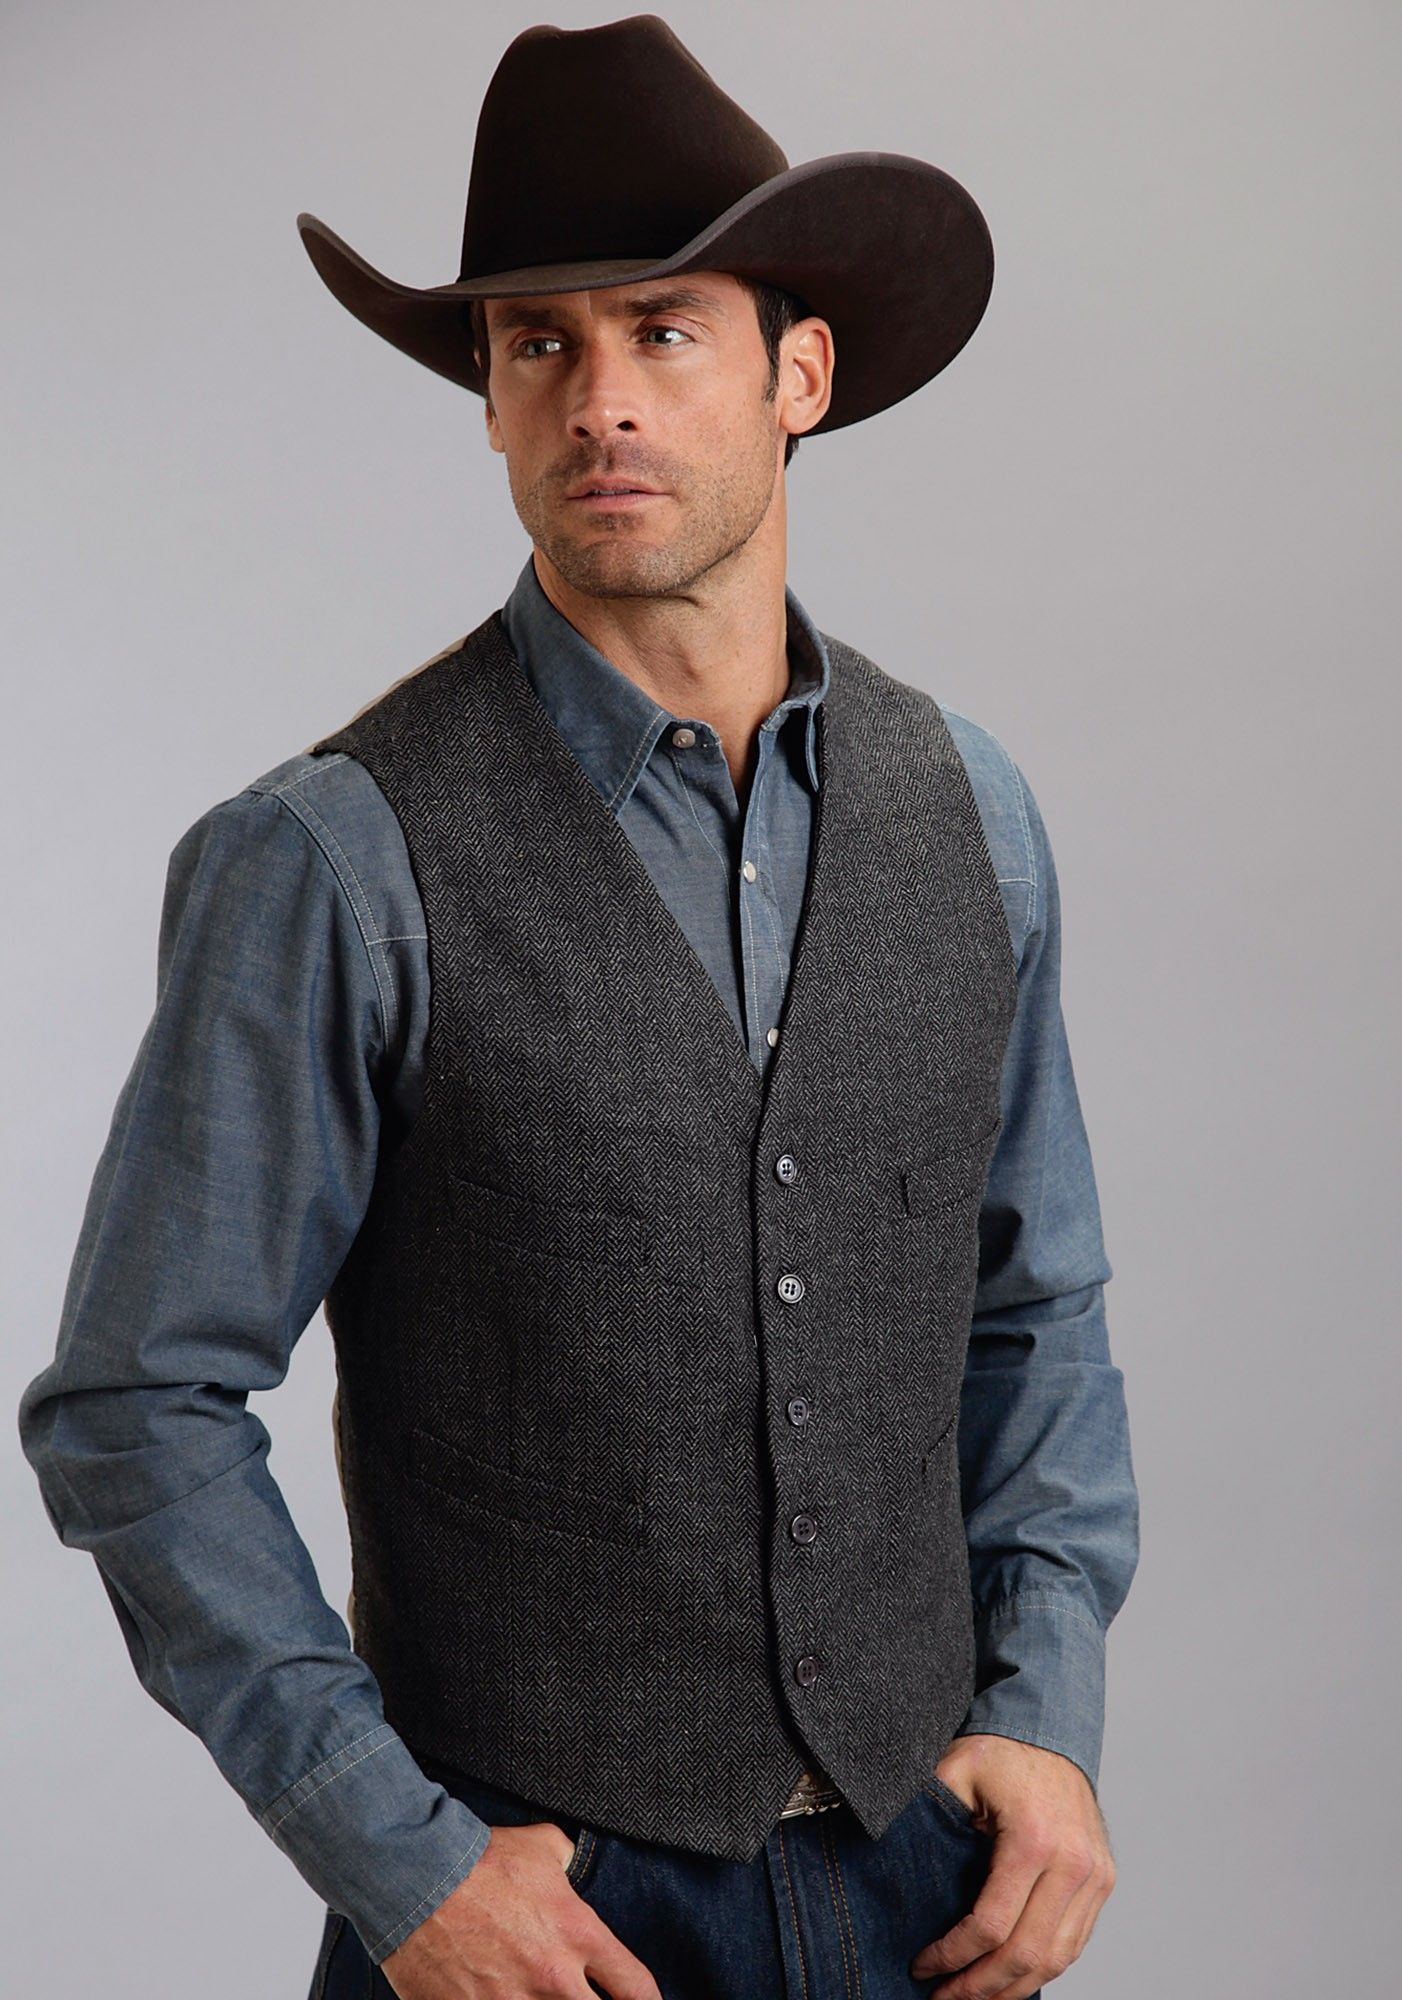 Mens Western Vest El Jefe From Stetson This Grey Herringbone Wool Blend Is Fully Lined With Four Front Welt Pockets And A Size Adjuster On The